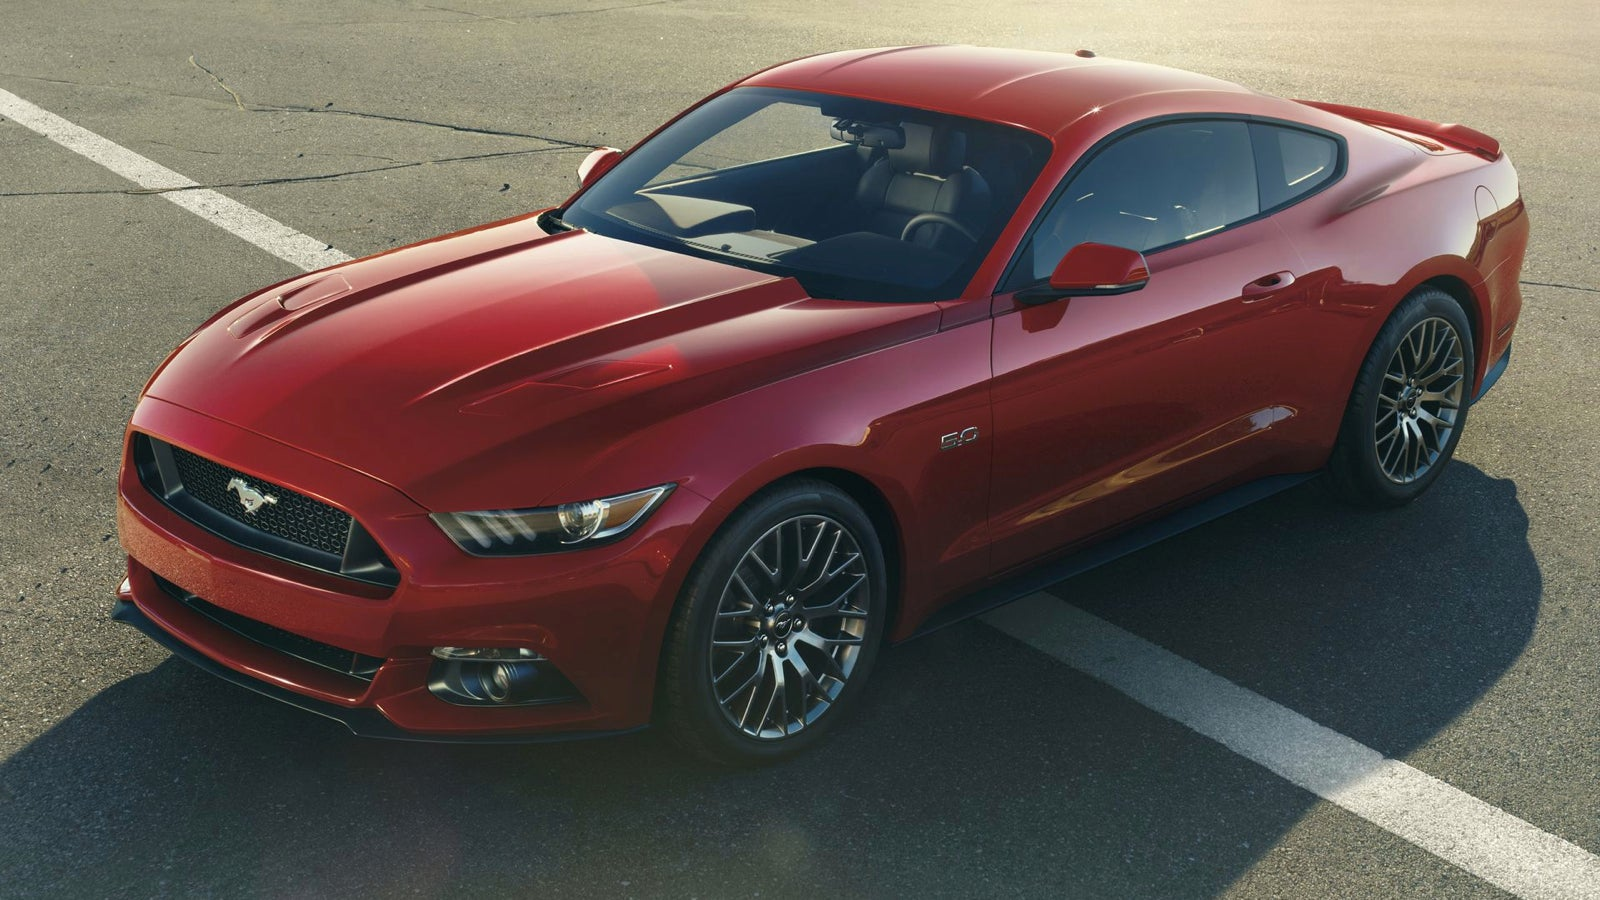 When you think  muscle car  many picture a prehistoric V8 belching exhaust and cheesy rock music. The 2015 Ford Mustang is not that car. & The 2015 Ford Mustang Is The Most Advanced Muscle Car Ever Built markmcfarlin.com